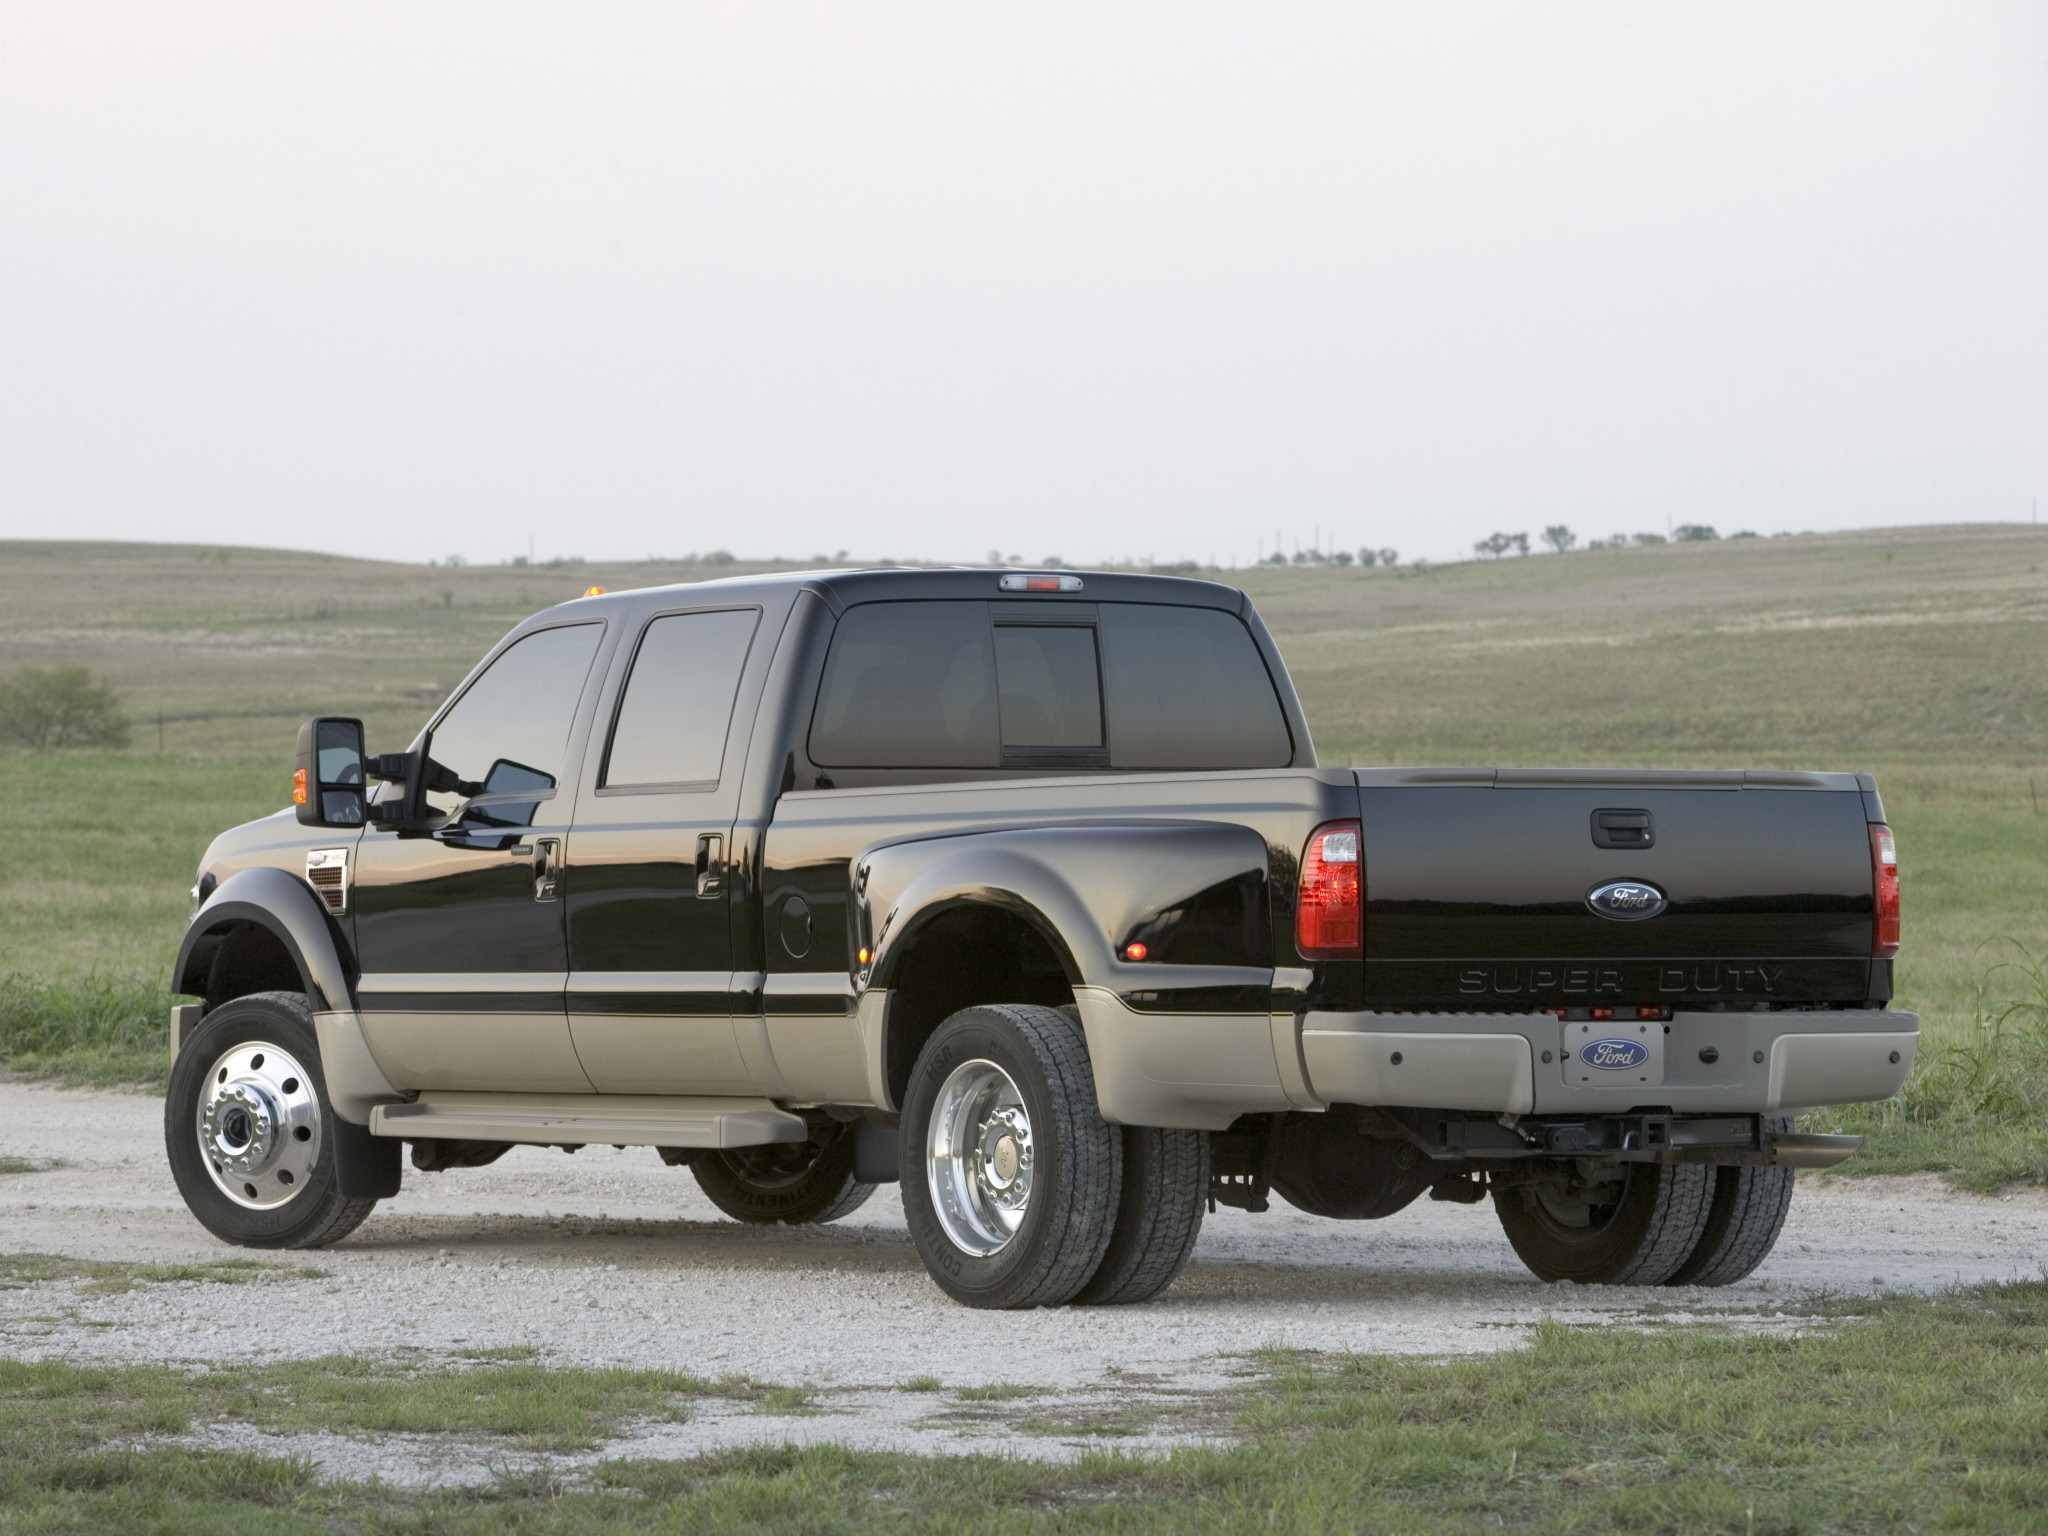 2008 Ford F 450 SuperDuty truck 4x4 g wallpaper background 2048x1536